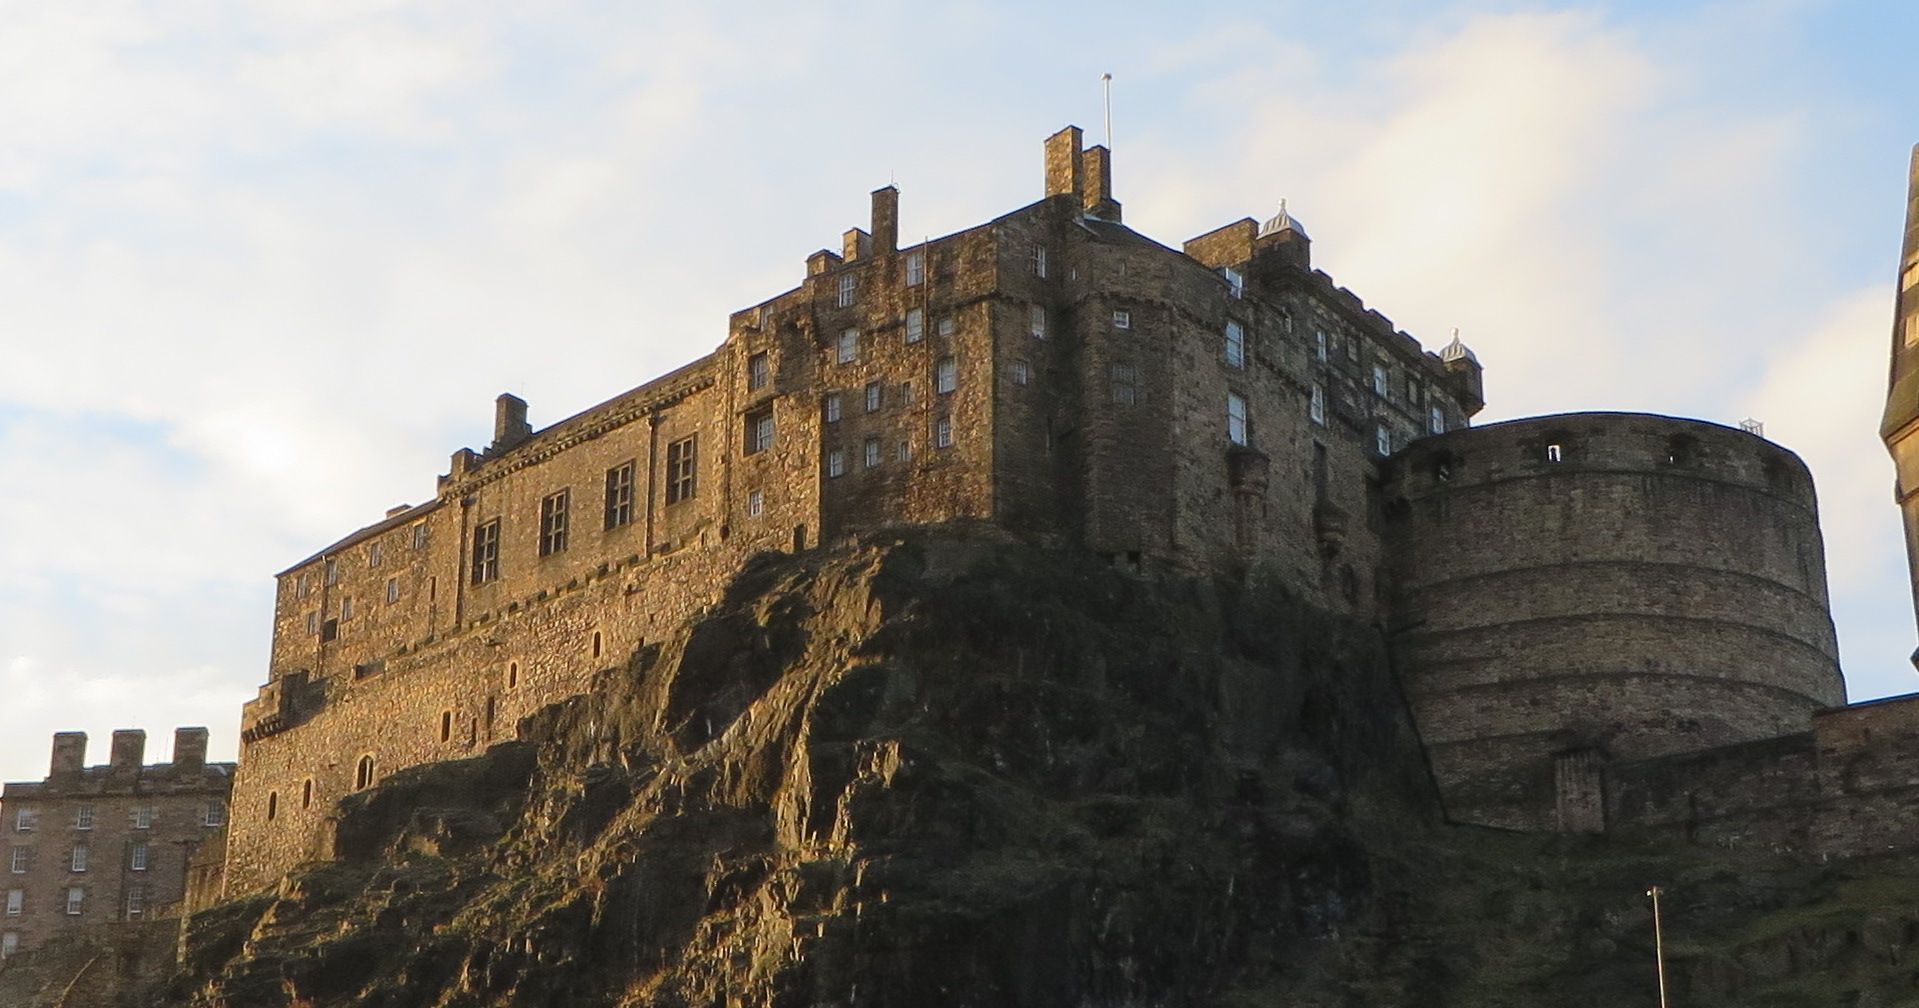 WITP will partner with the Scottish Arts Club in Edinburgh, Scotland, for a month-long exhibition. Pictured is Edinburgh Castle.